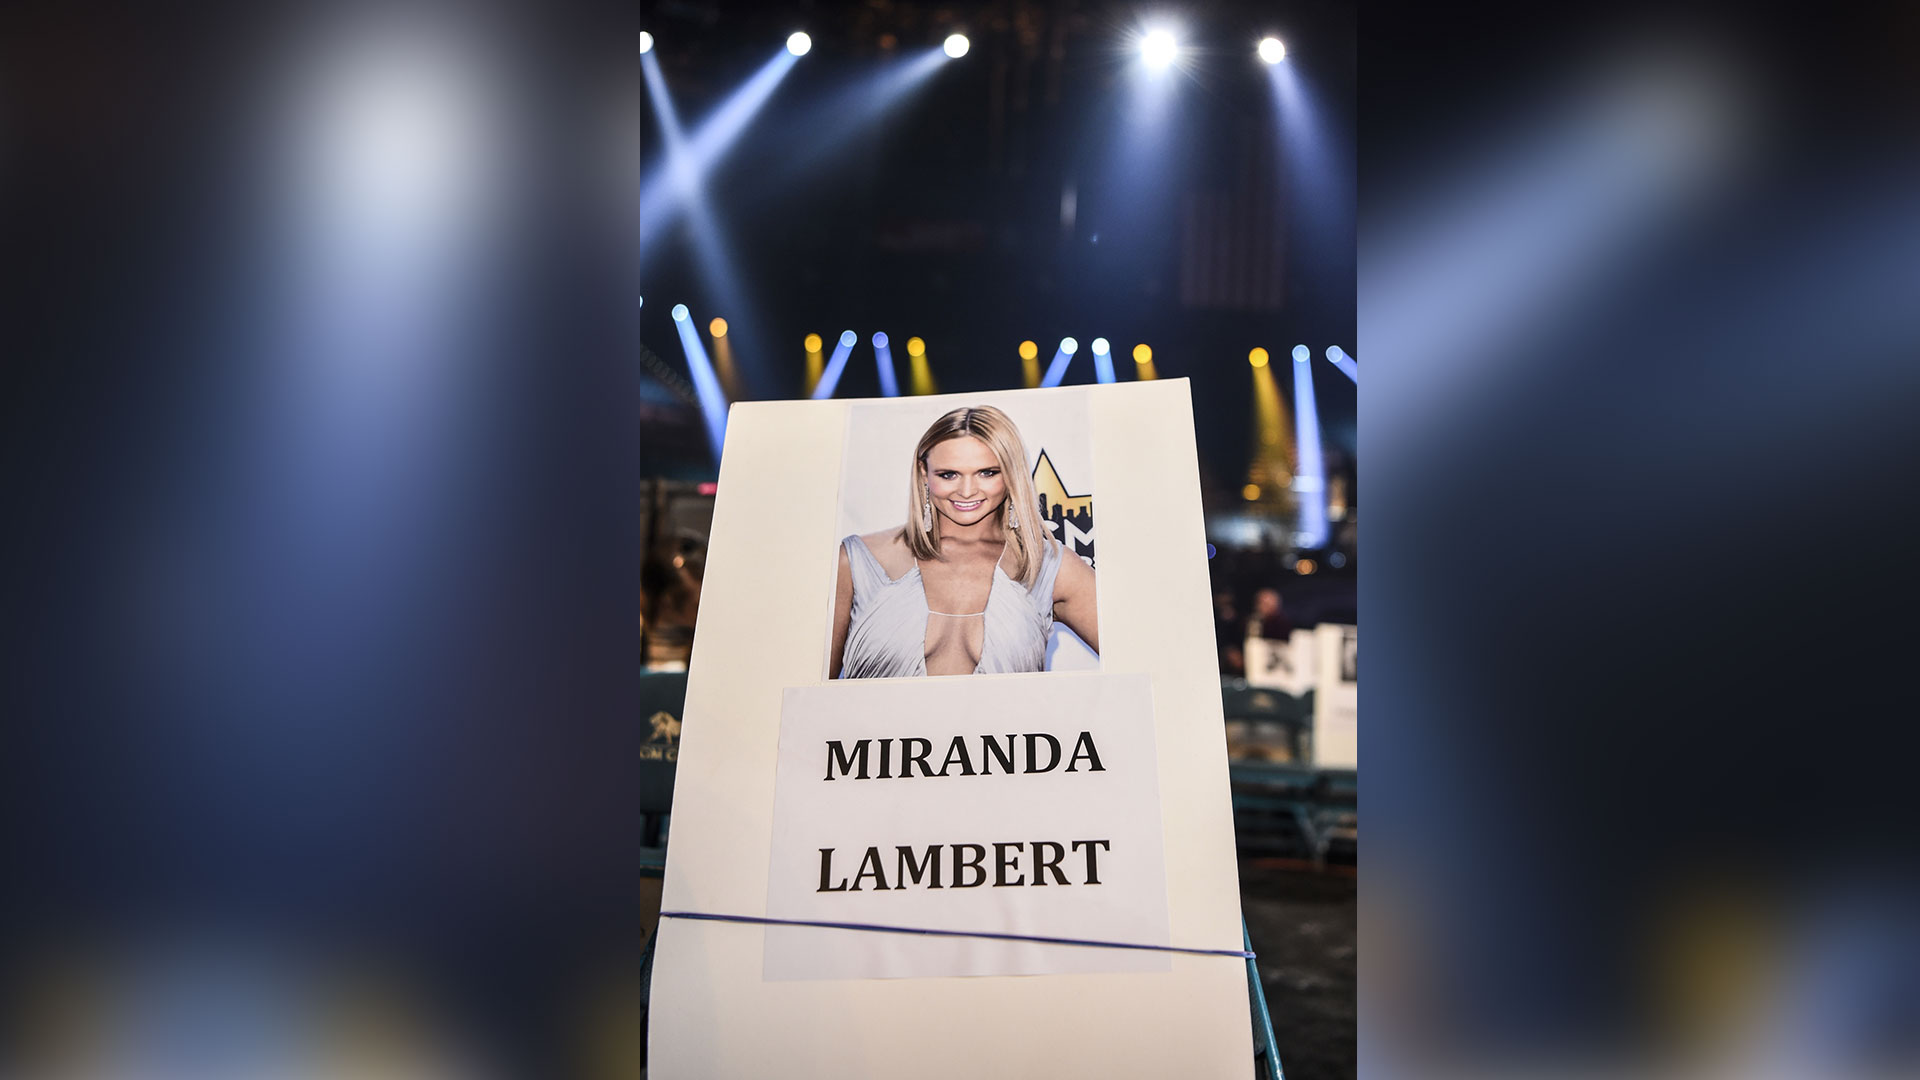 Miranda Lambert is another big name set to appear at the 53rd ACM Awards.